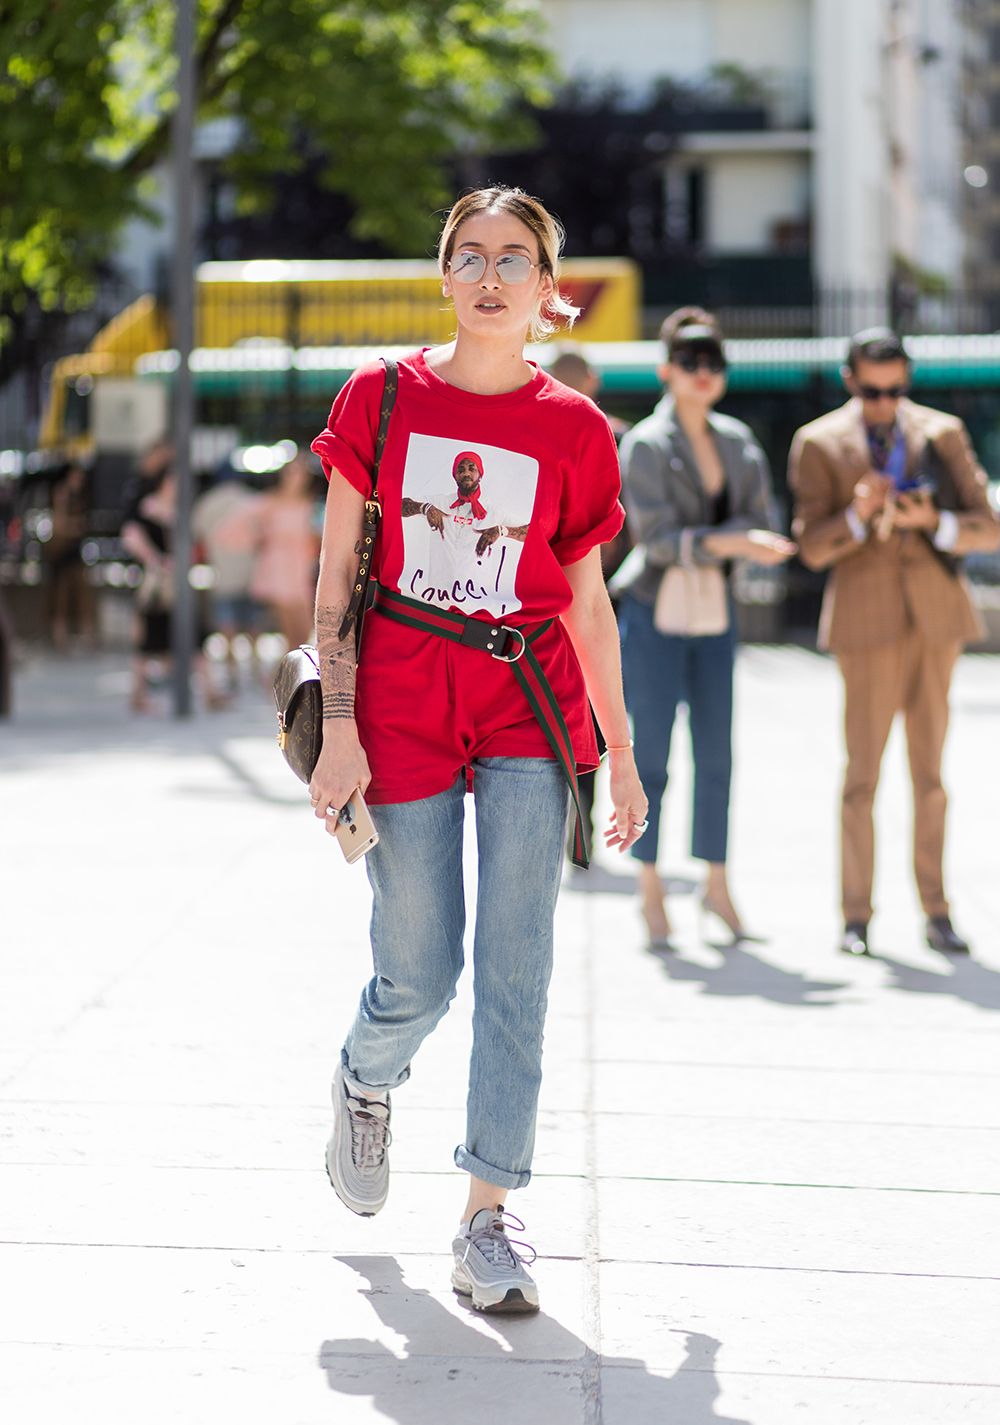 ec73e1896 STYLECASTER | Graphic Tees | How to Wear a Graphic Tee | Graphic Tee  Outfits | 32 Cool Graphic Tees for Summer